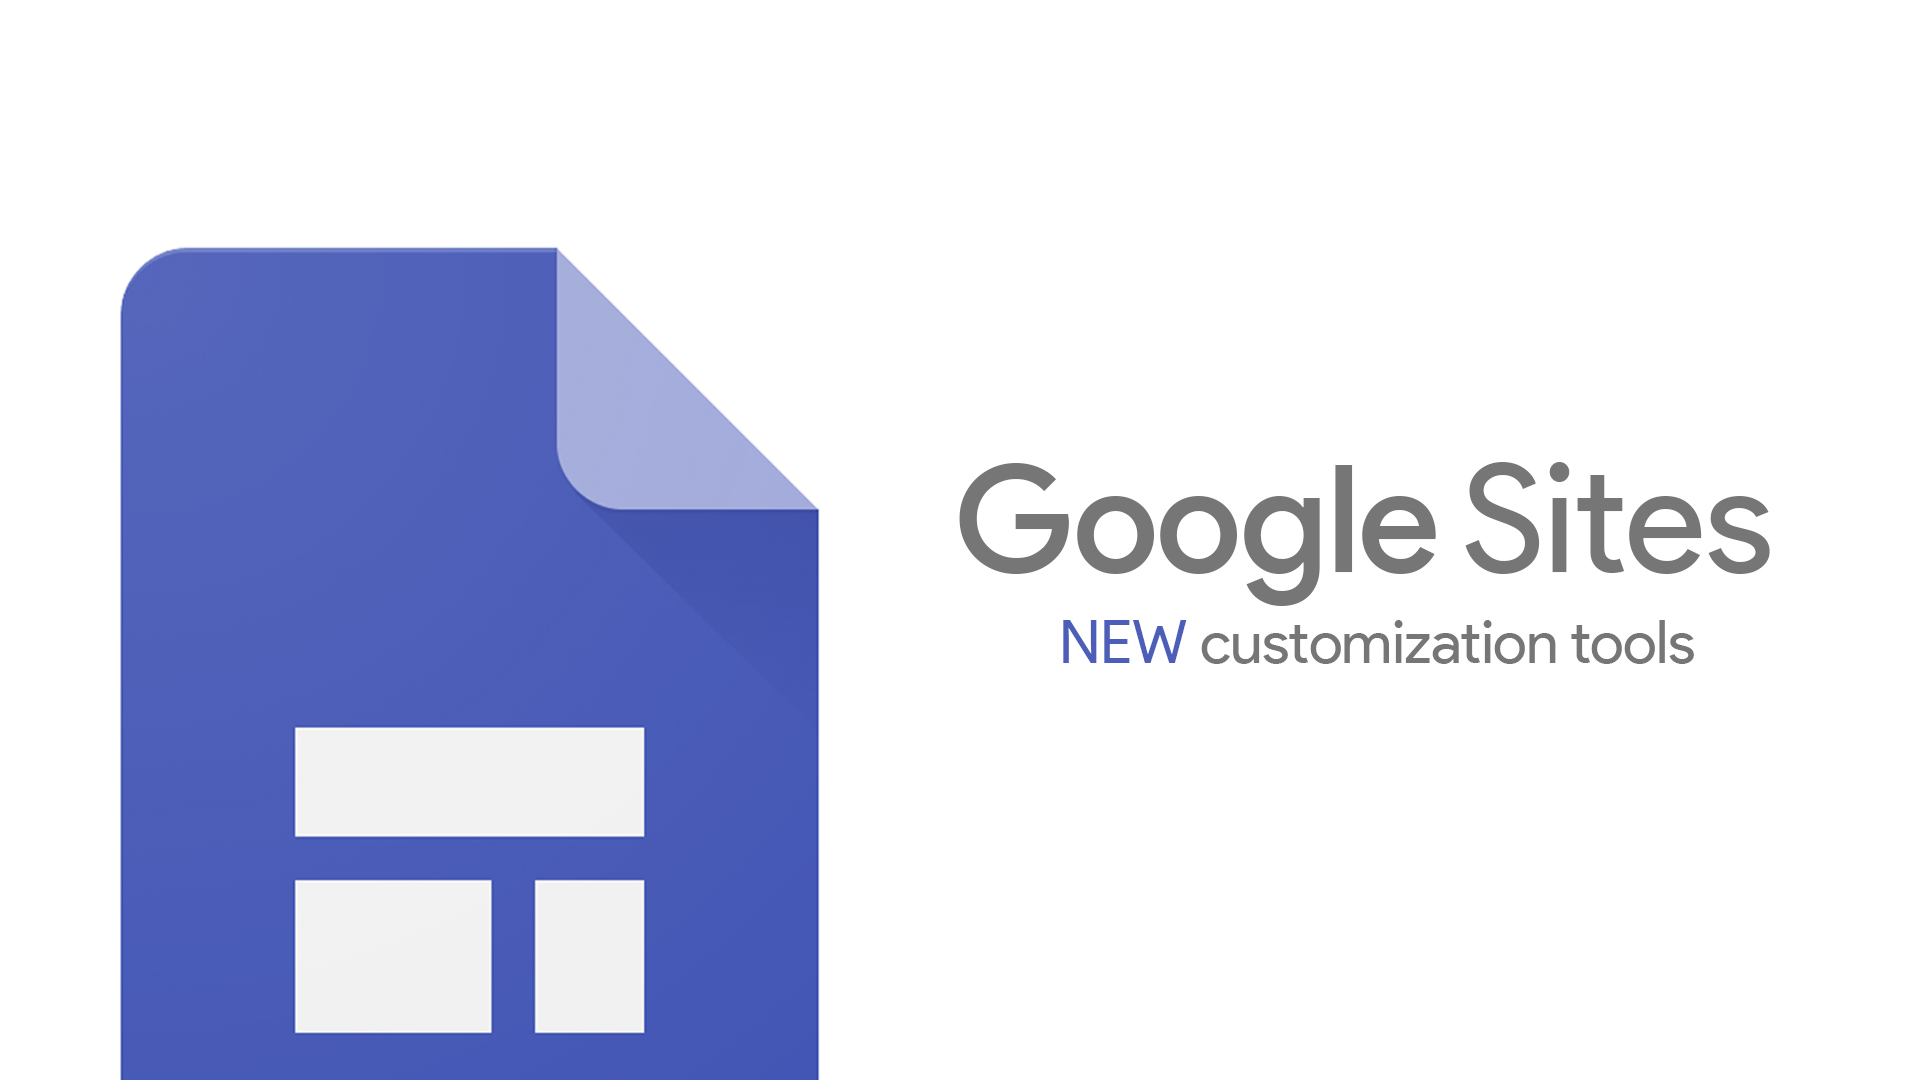 Teachers rejoice! Google Sites just added new customization tools, themes coming next year